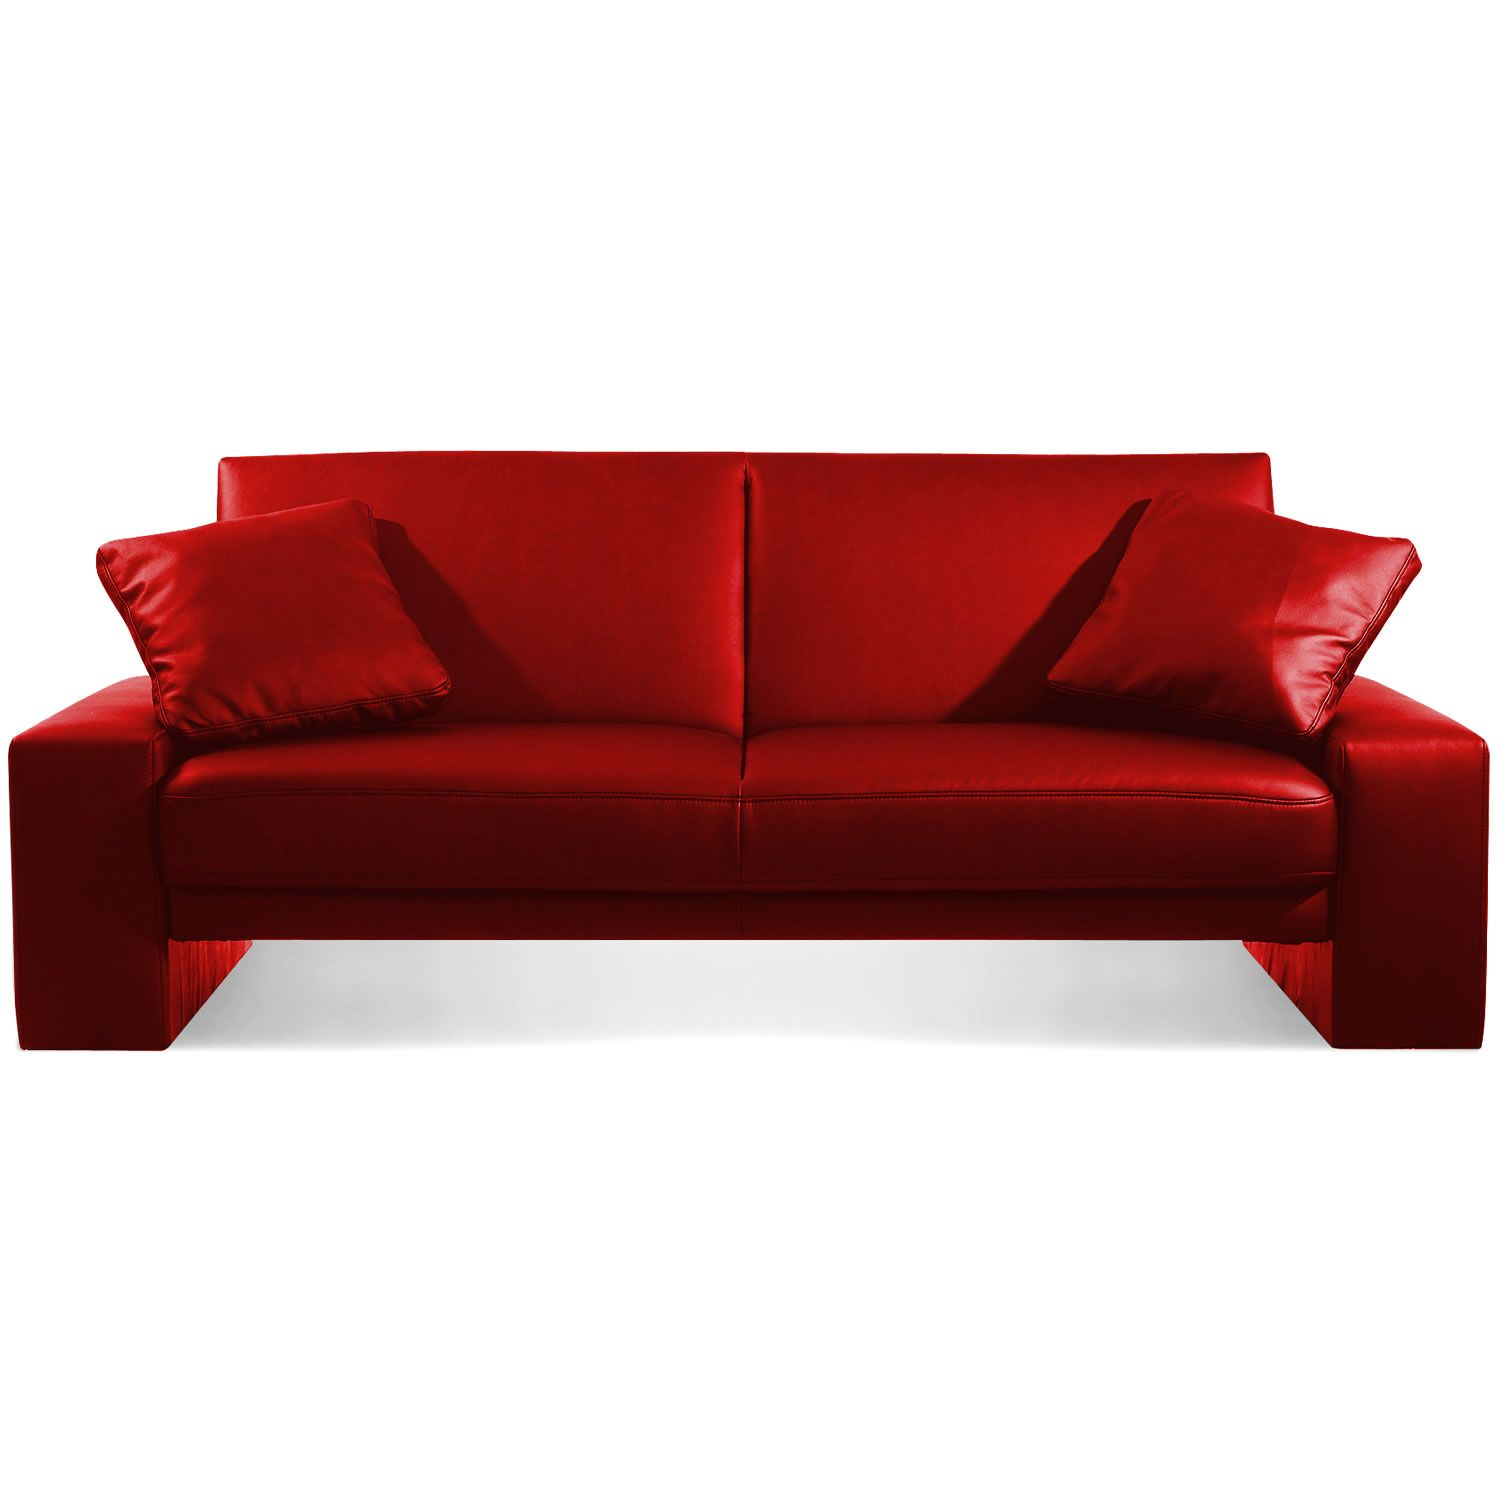 Sofa Bed Designer Red Faux Leather Supra 2 Seater Sleeper Cheap